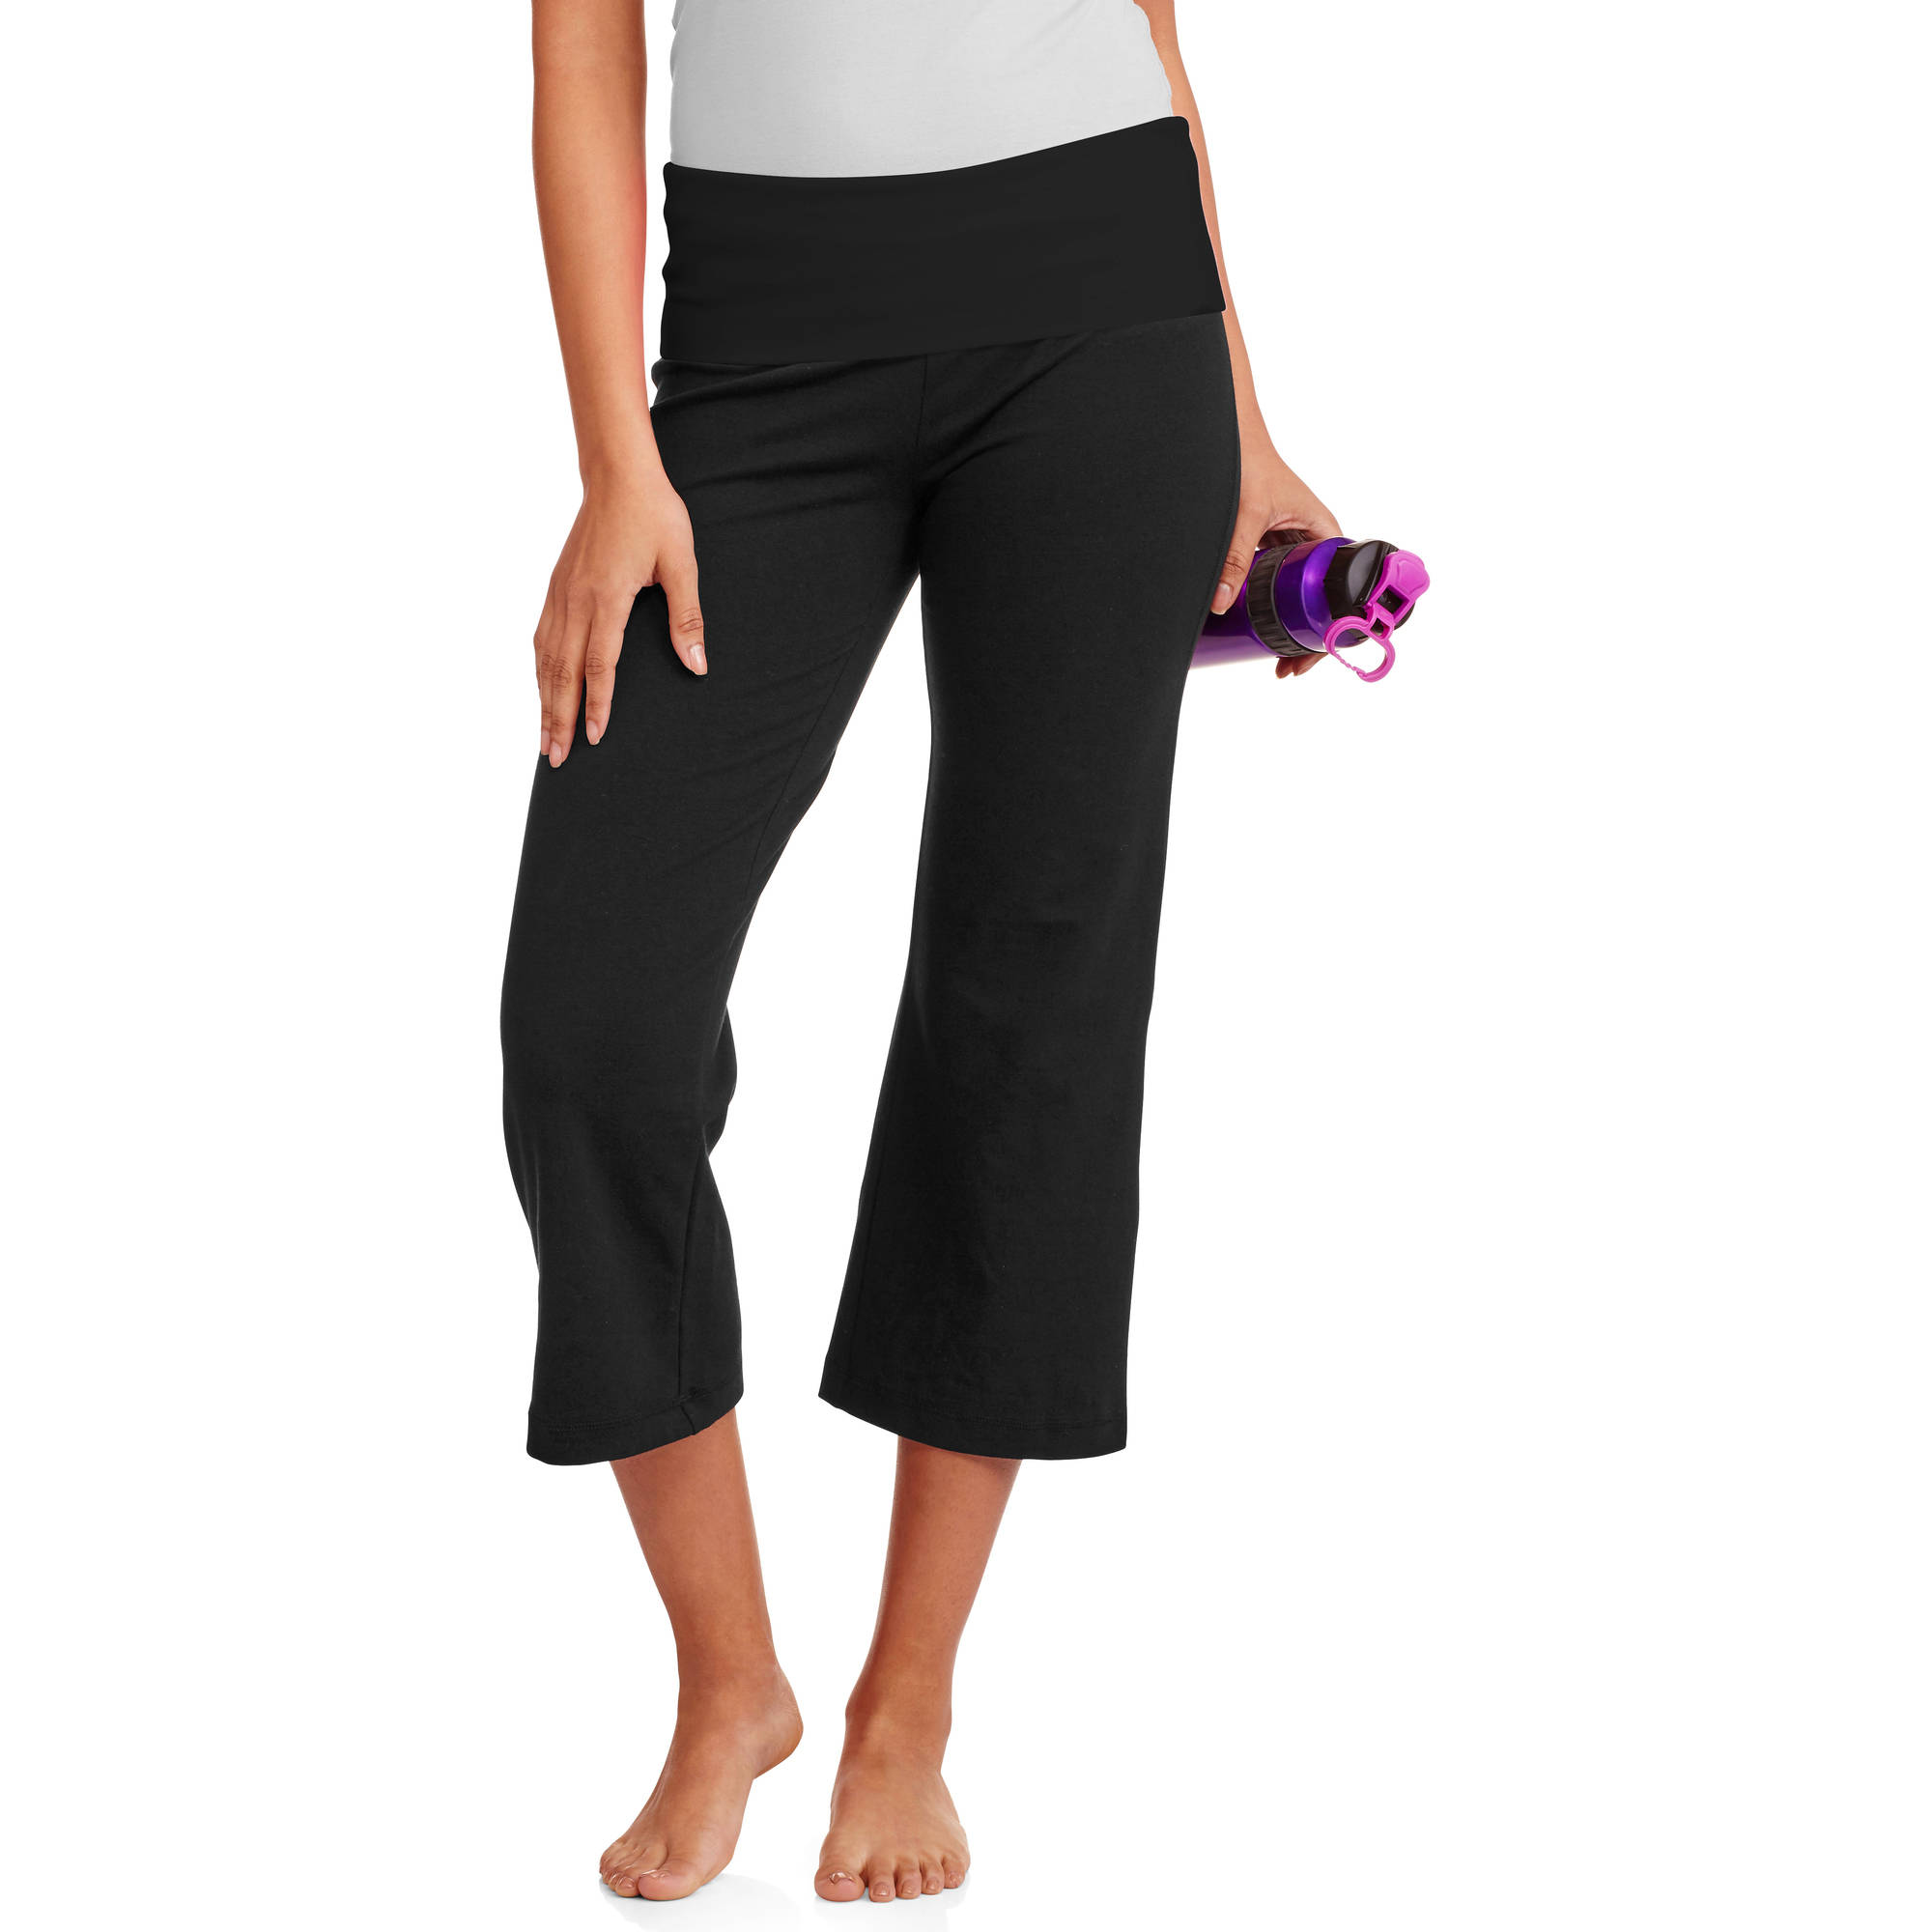 No Boundaries Juniors' Capri Yoga Pants - Walmart.com